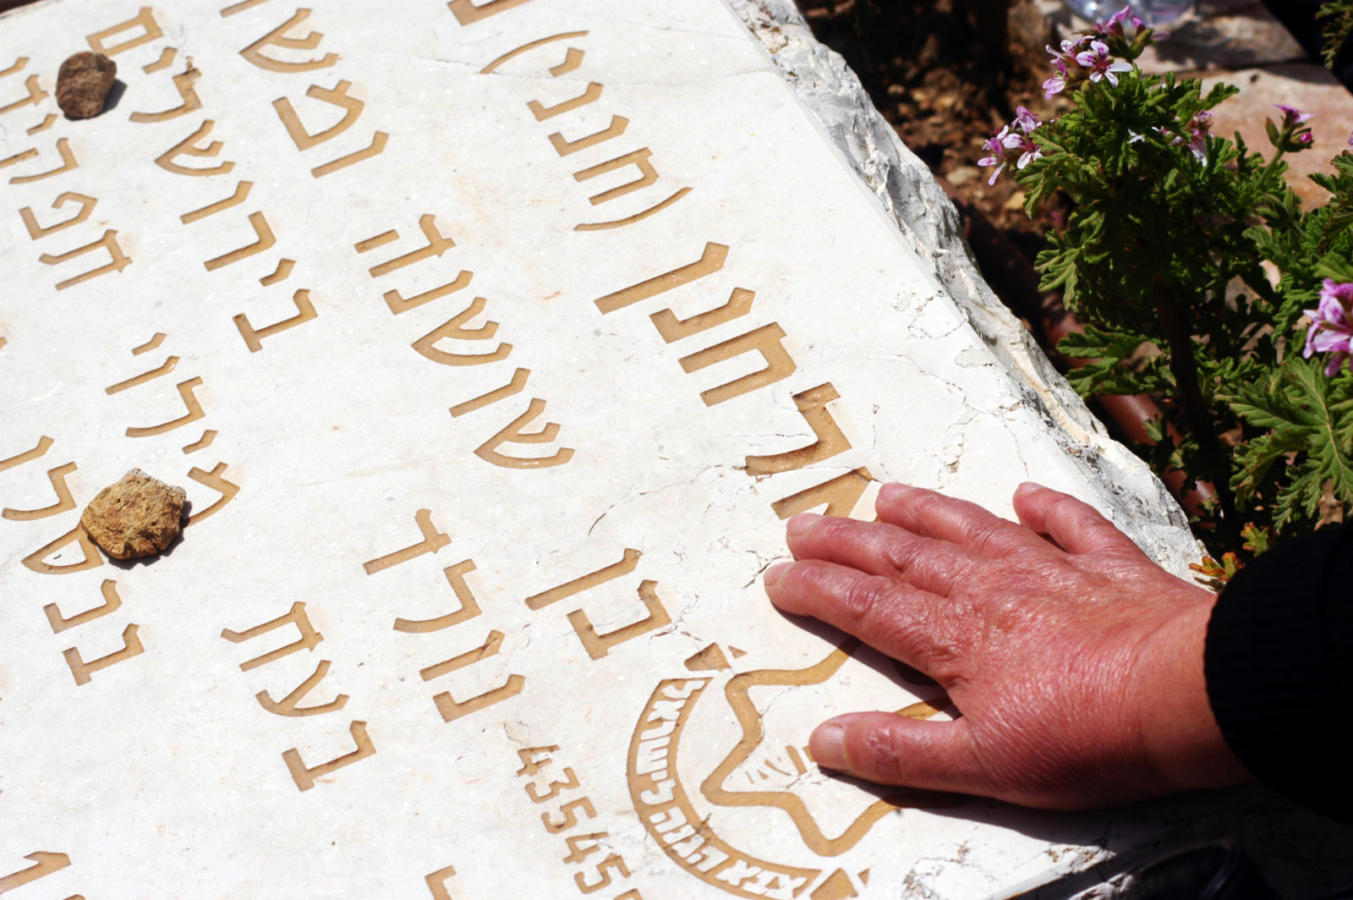 Yom Hazikaron: Israel's Memorial Day | My Jewish Learning